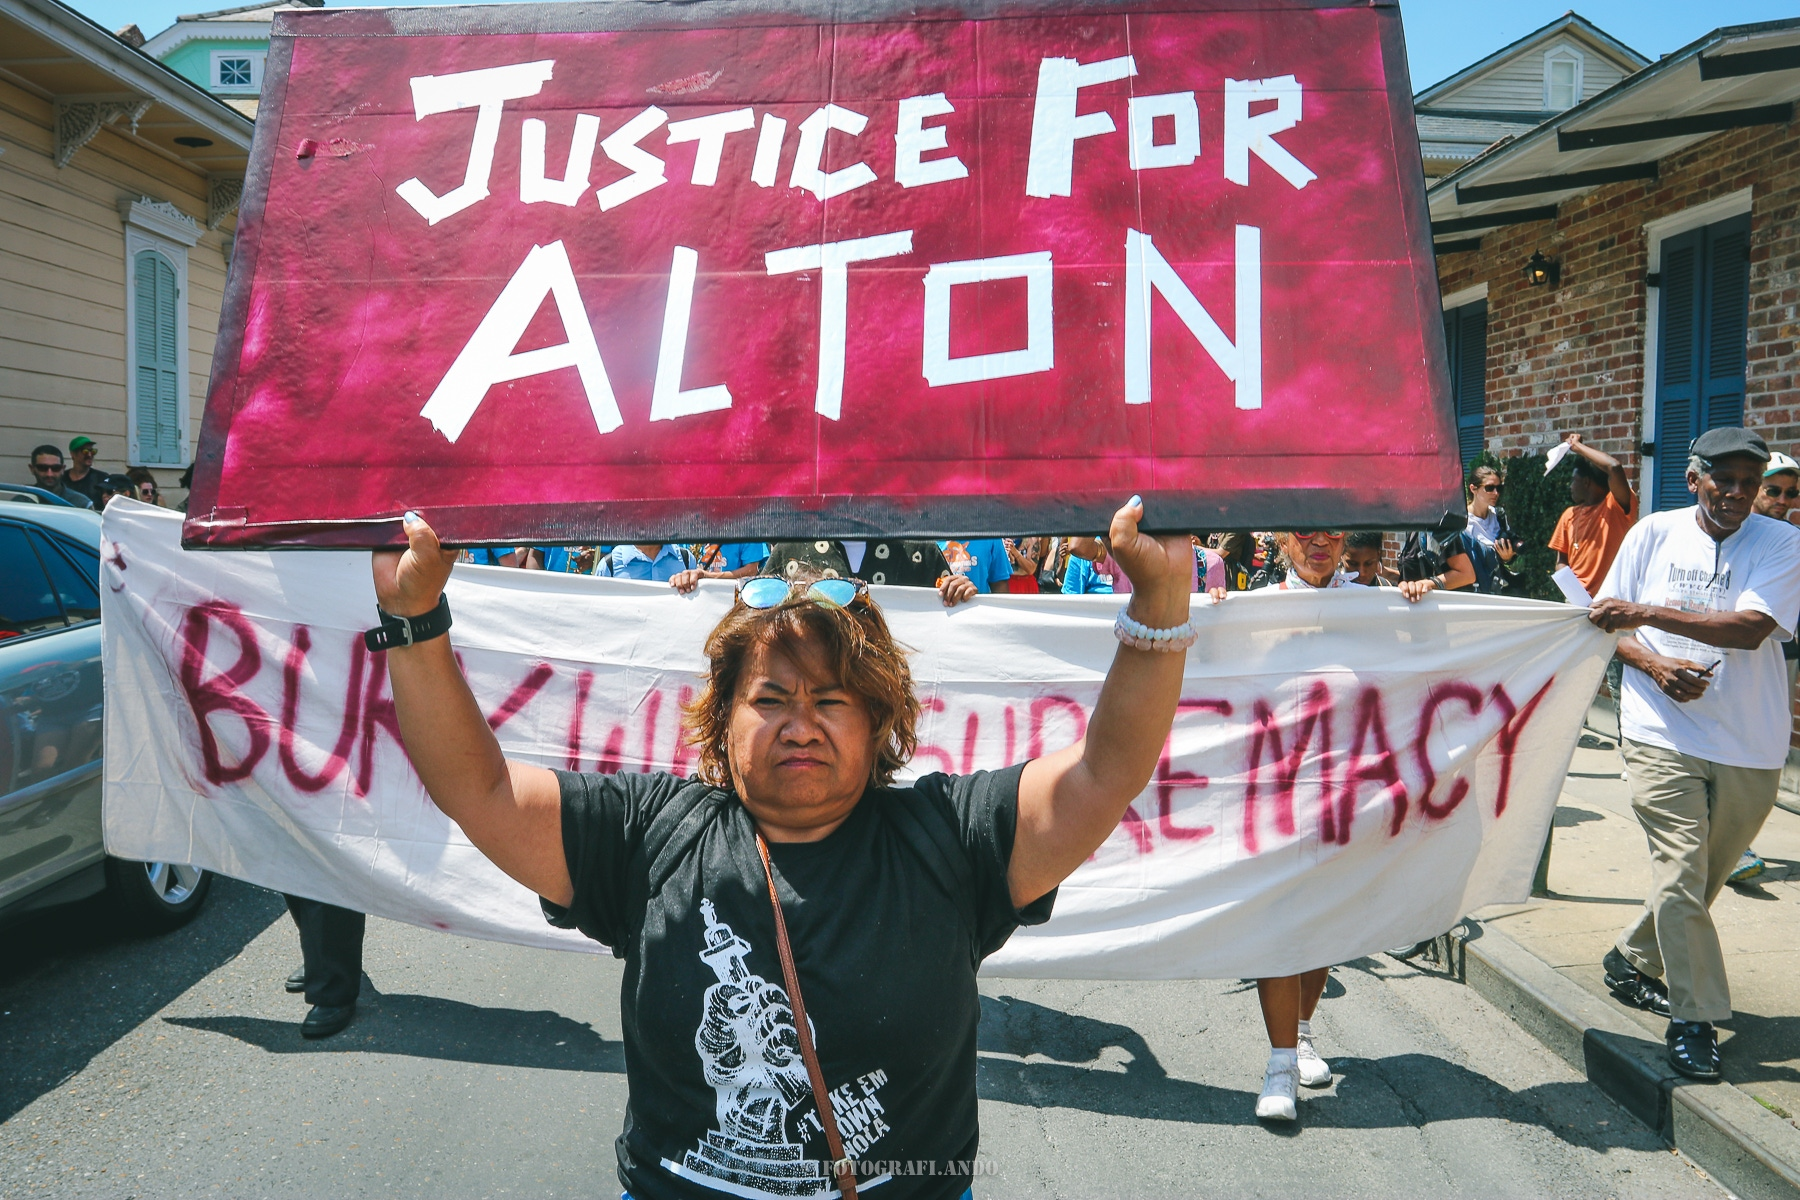 A woman of color holds up a large sign in cloudy red with the white-taped letters Justice For Alton. She stands in the street in front of marching protestors holding a white banner saying Bury White Supremacy.